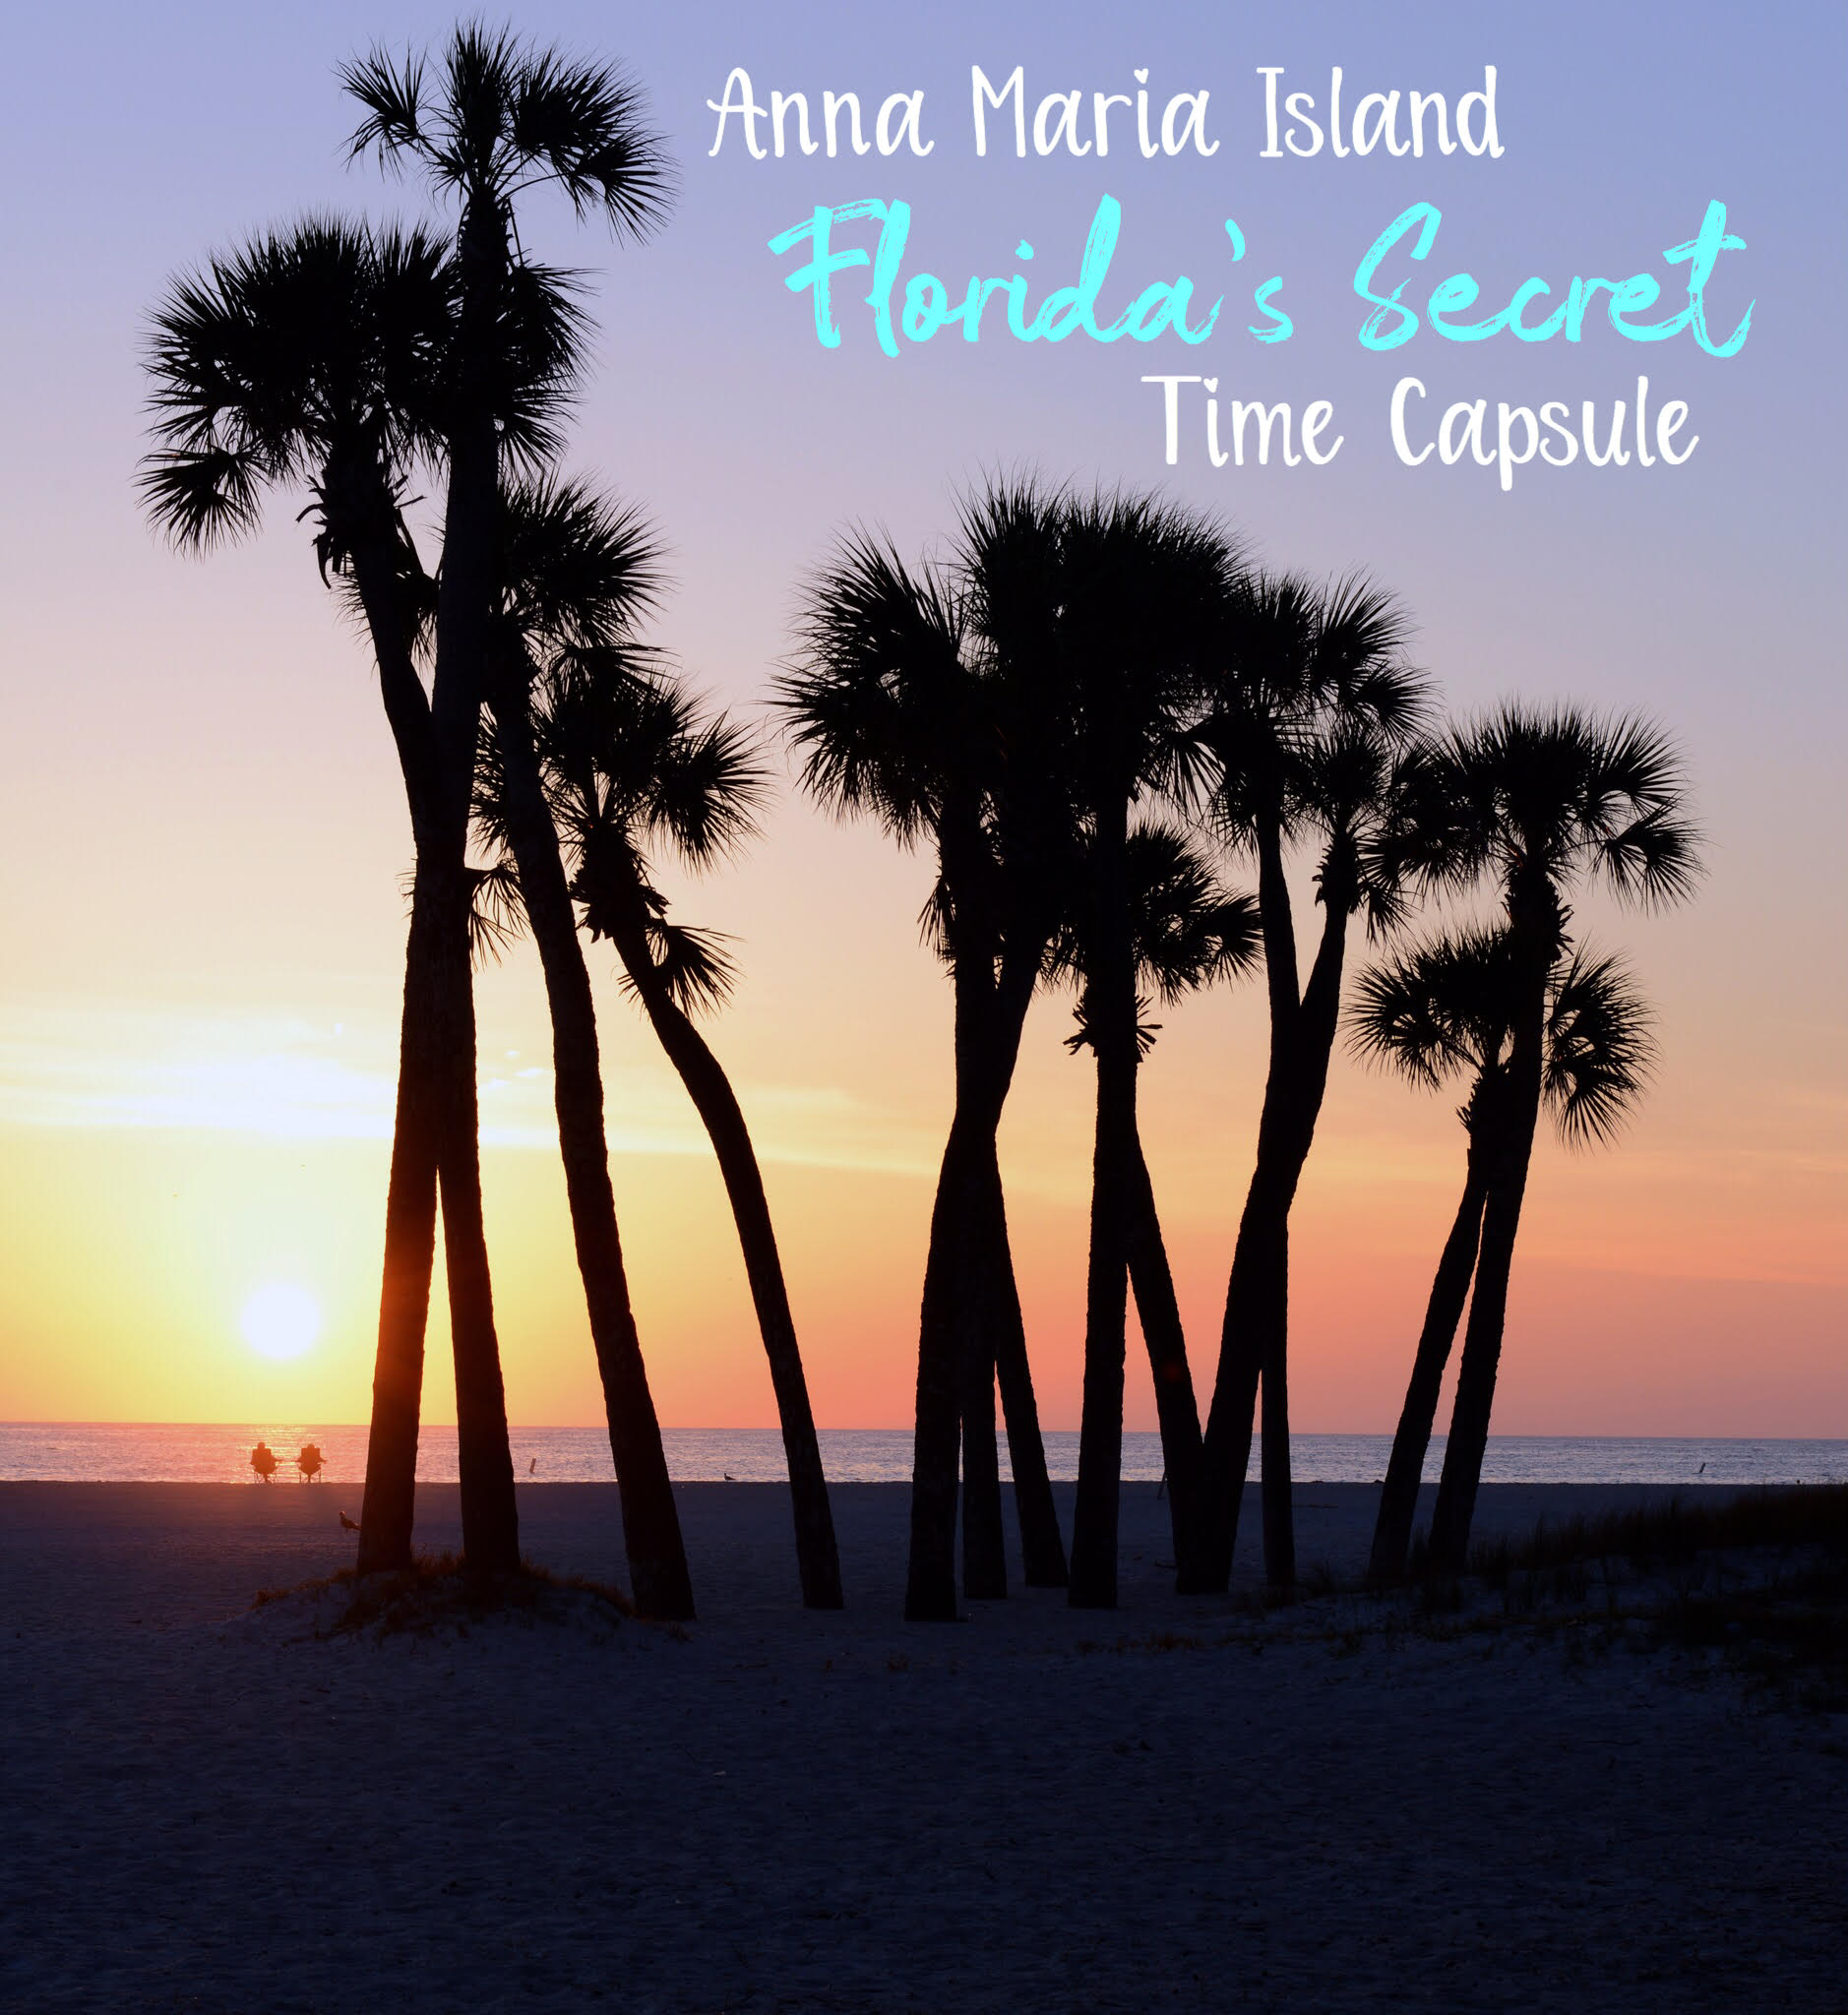 Anna Maria Island - Florida's Secret Time Capsule